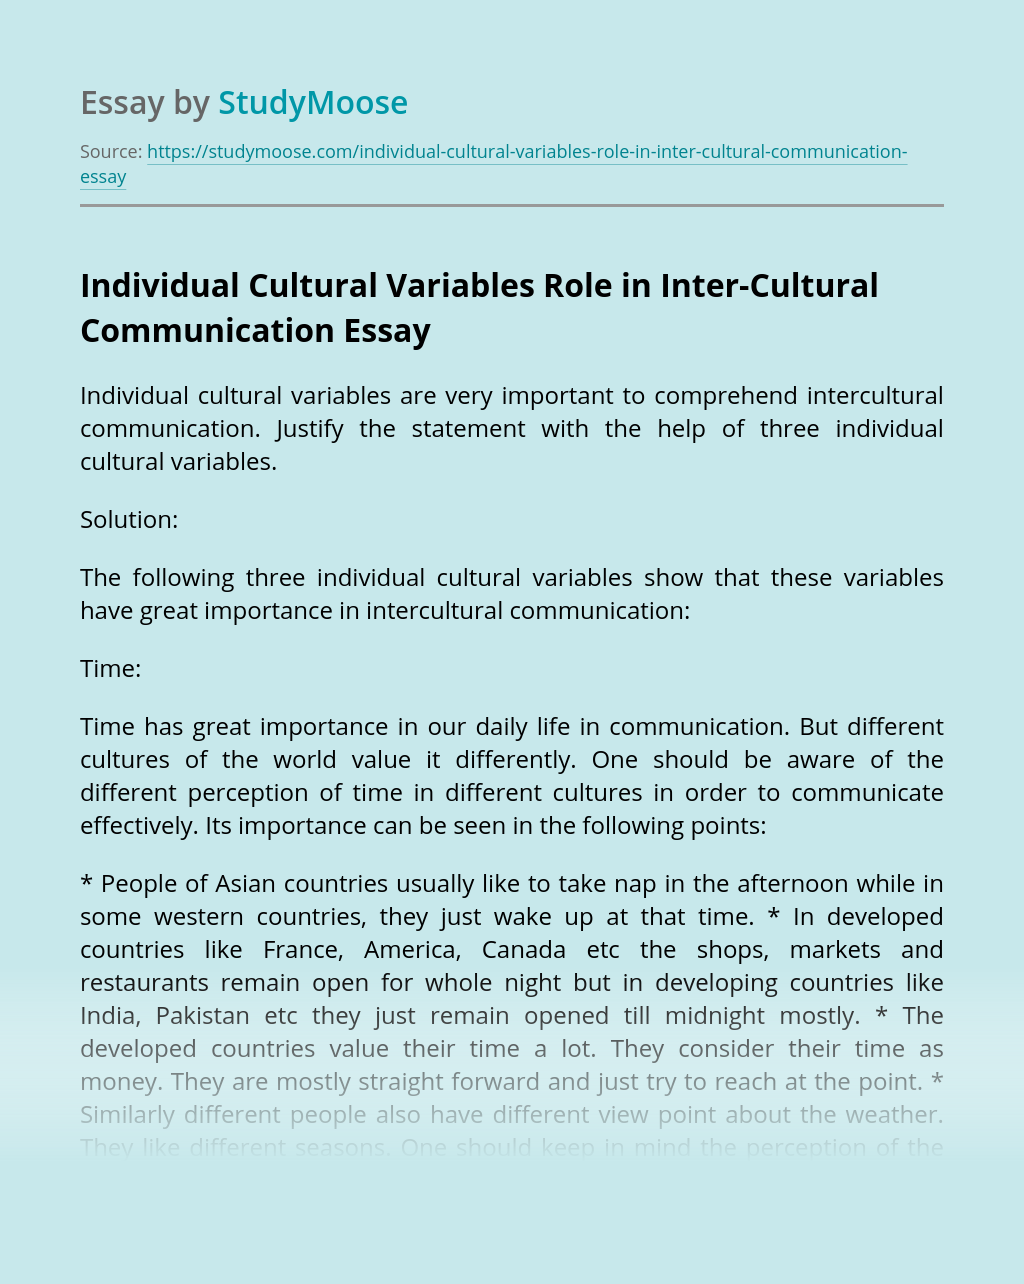 Individual Cultural Variables Role in Inter-Cultural Communication